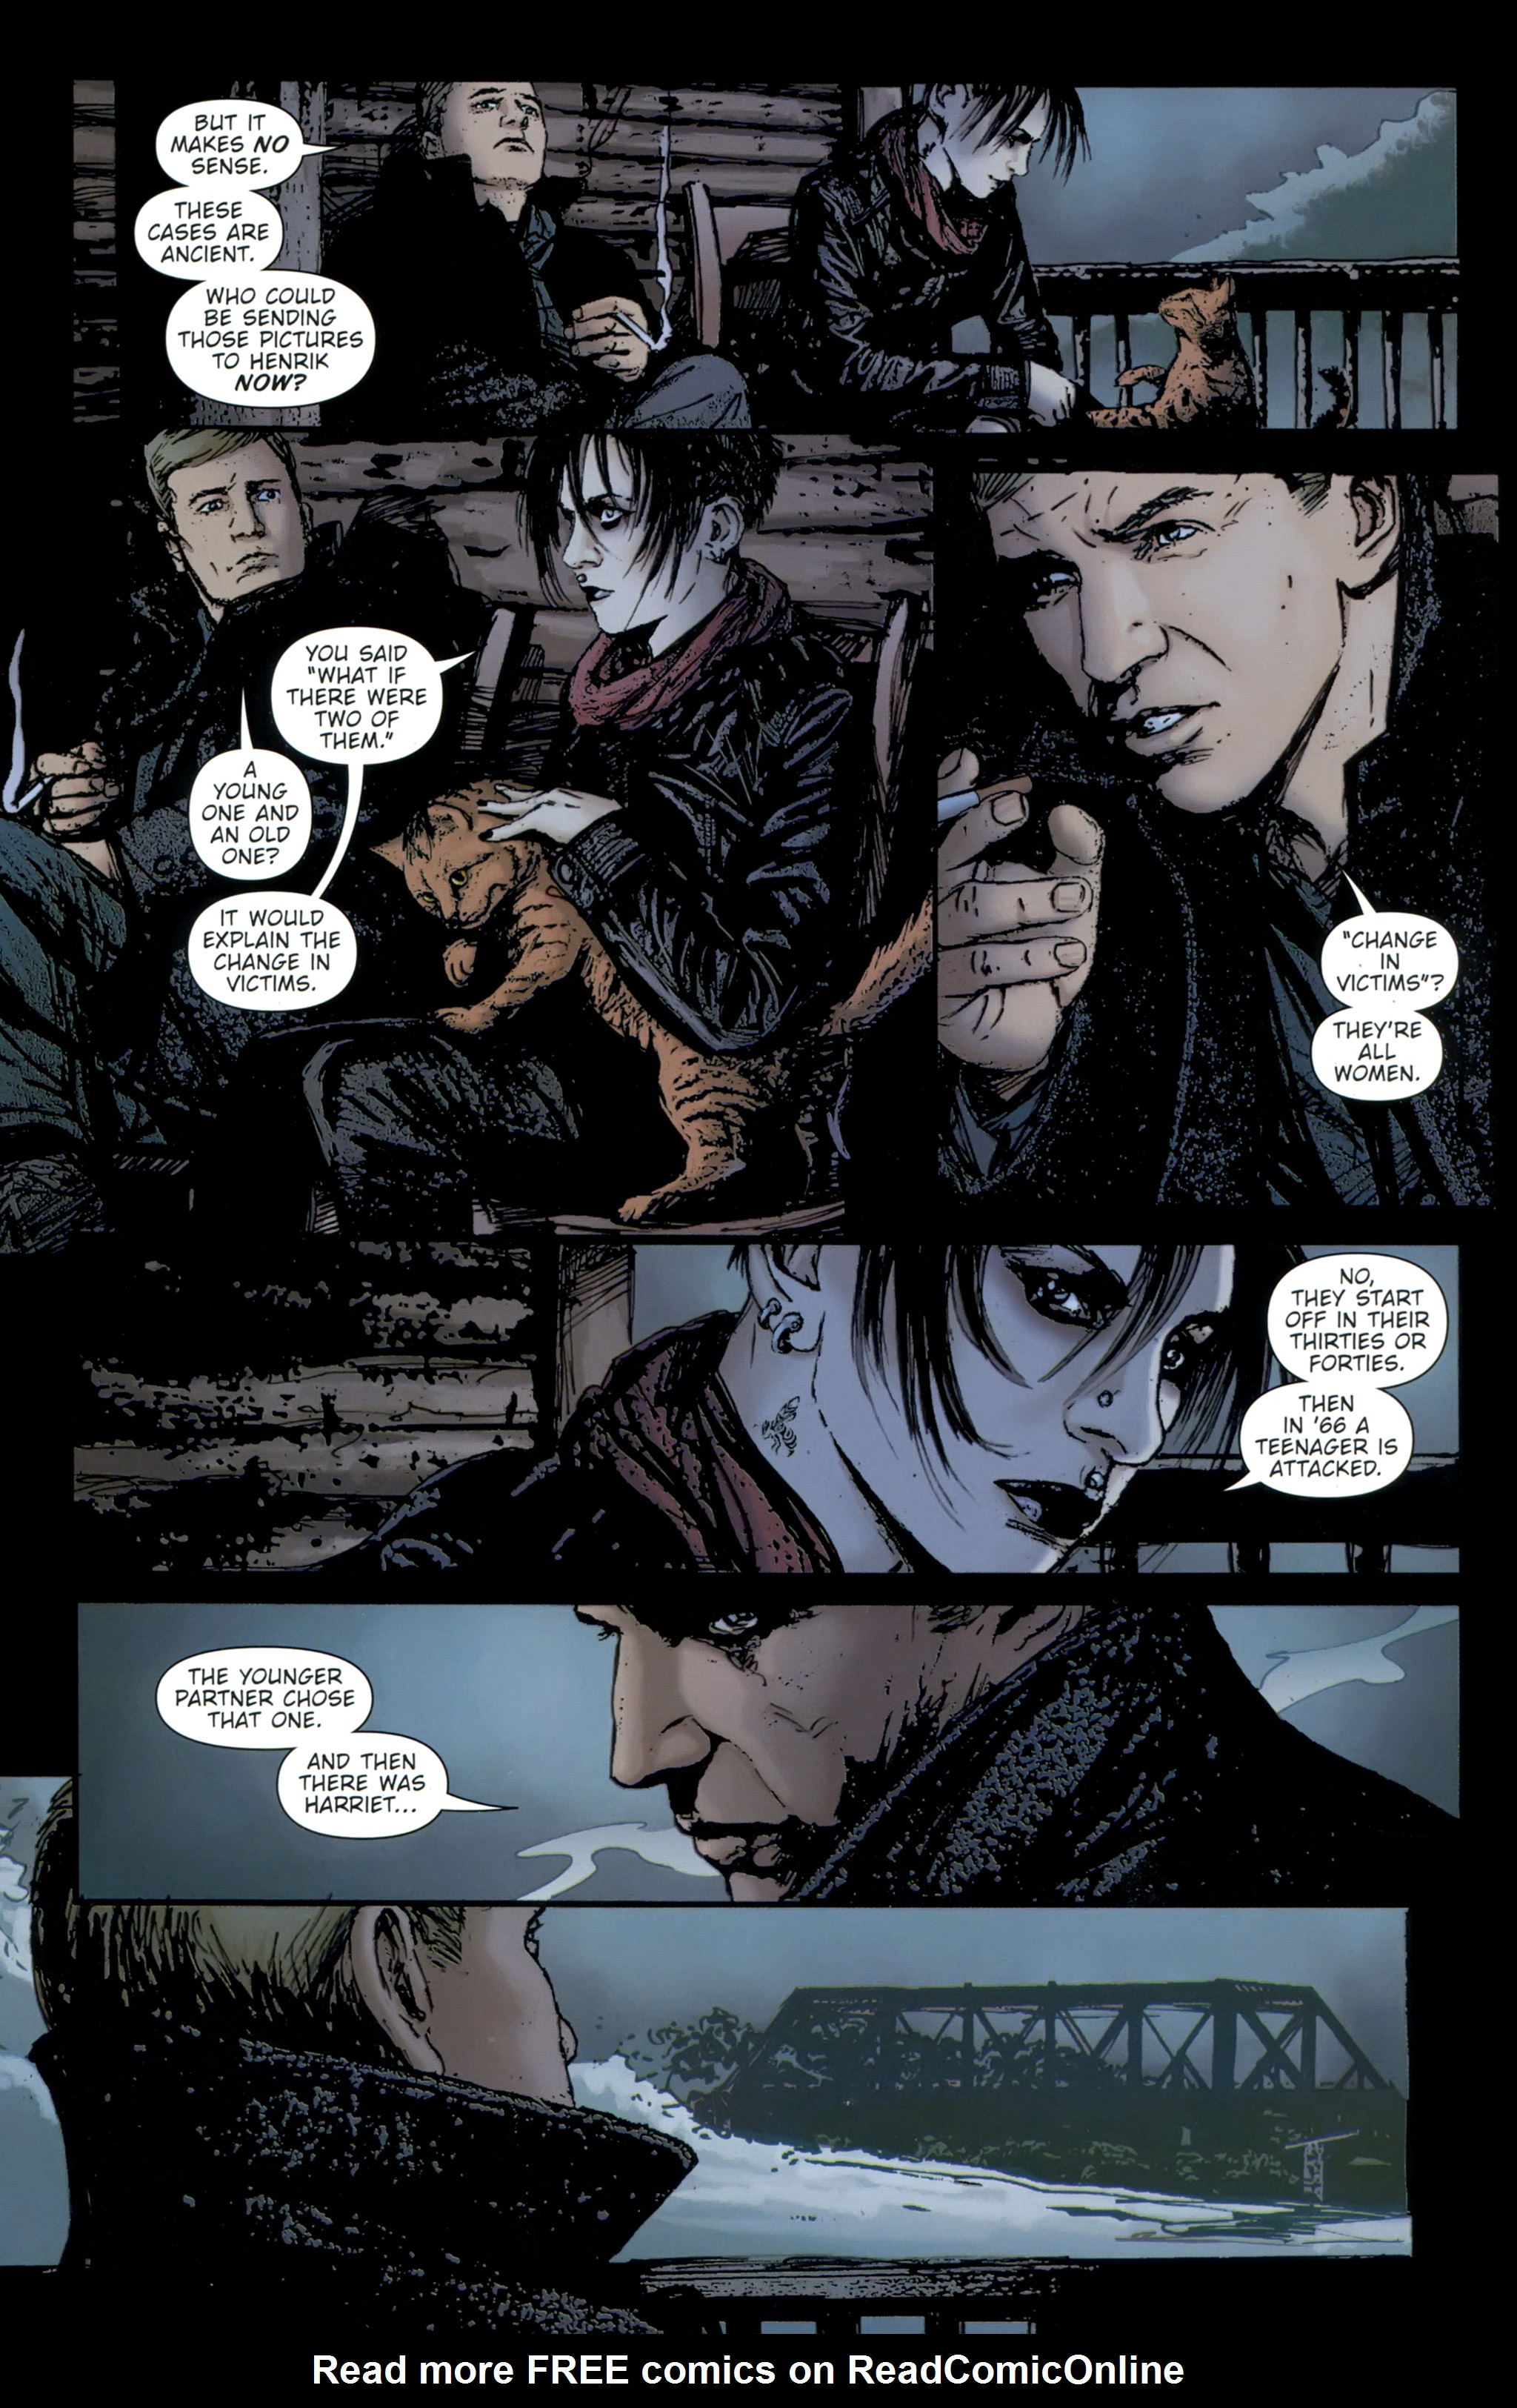 Read online The Girl With the Dragon Tattoo comic -  Issue # TPB 2 - 68